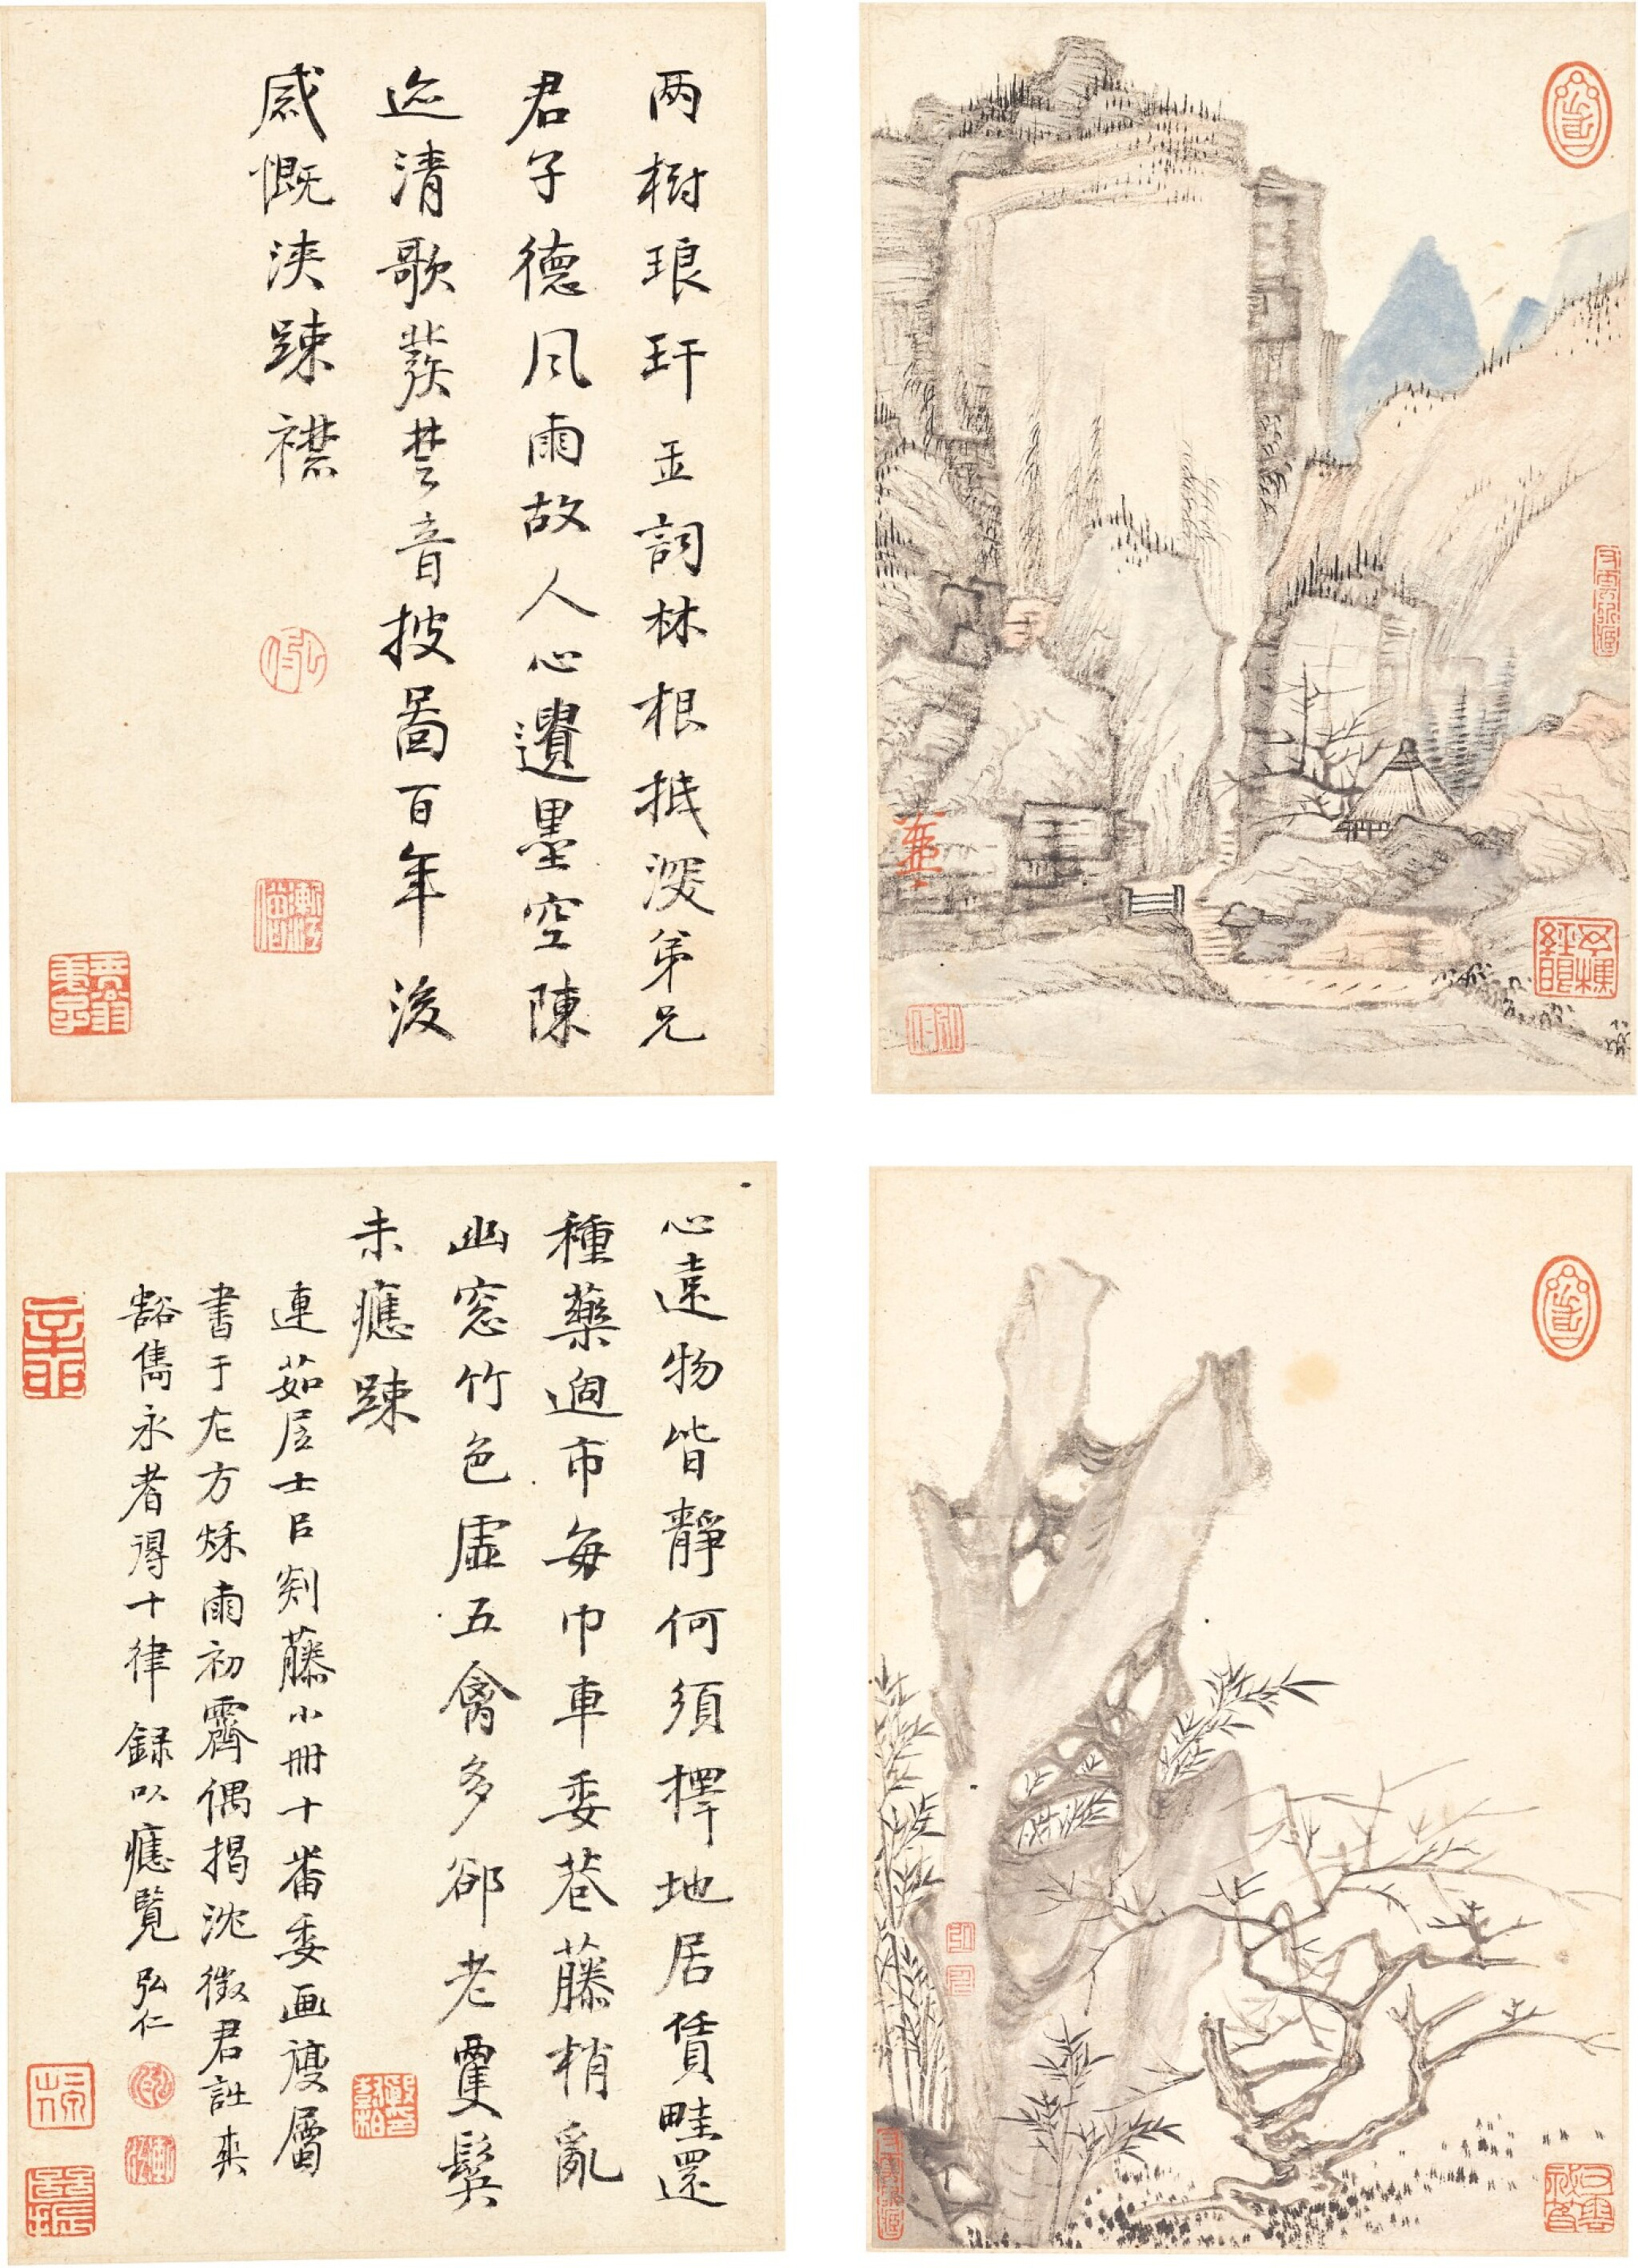 View full screen - View 1 of Lot 3076. Hongren 1610 - 1664 弘仁1610-1664 | Landscapes and Calligraphies 書畫合璧冊.